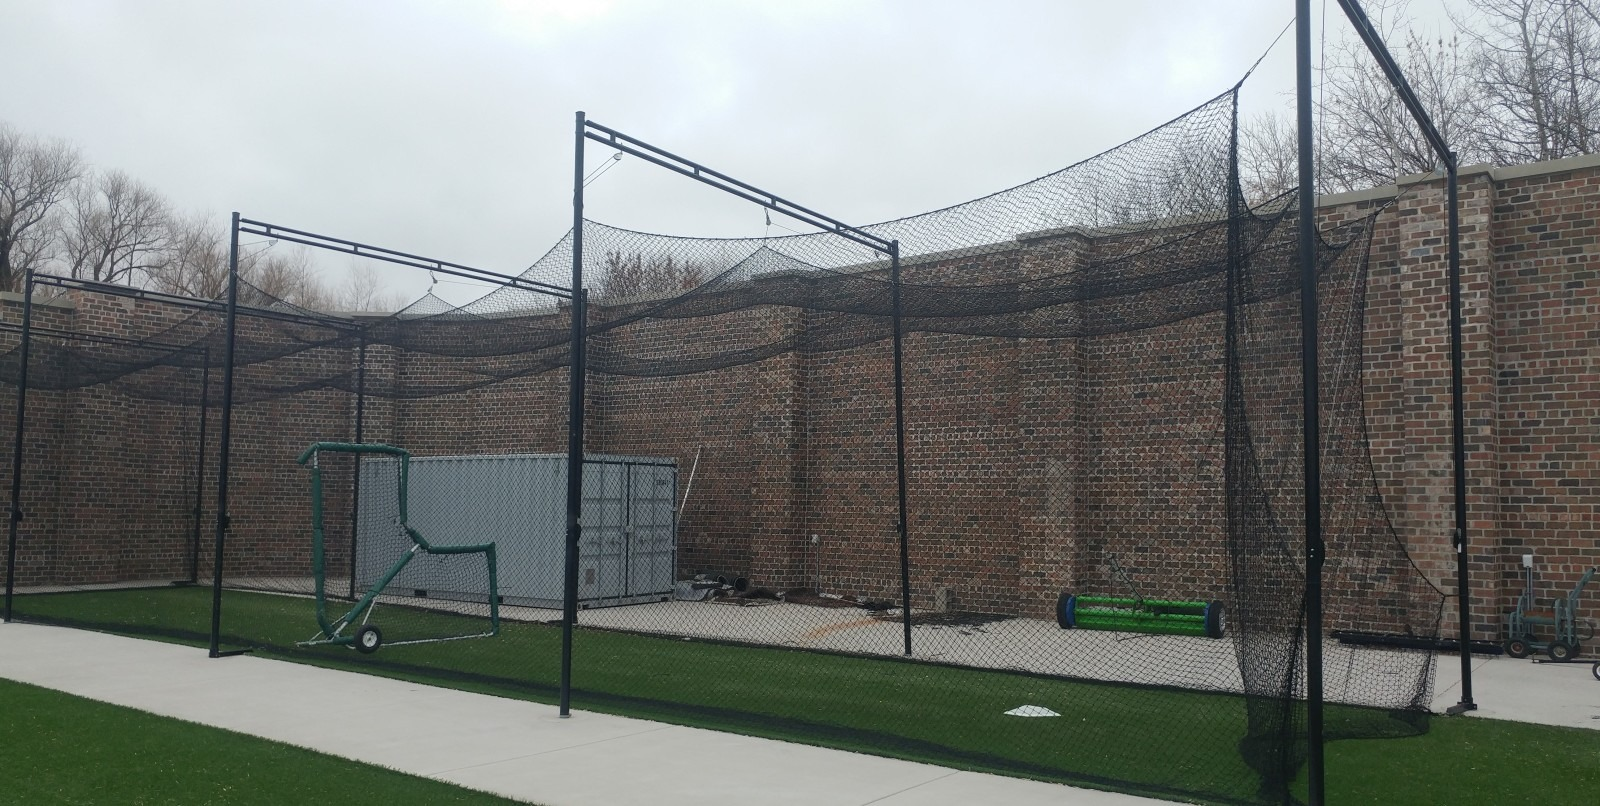 Duluth Sport Nets offers handcrafted sport netting for baseball fields and batting cages, driving ranges, volleyball courts, hockey arenas, and more.